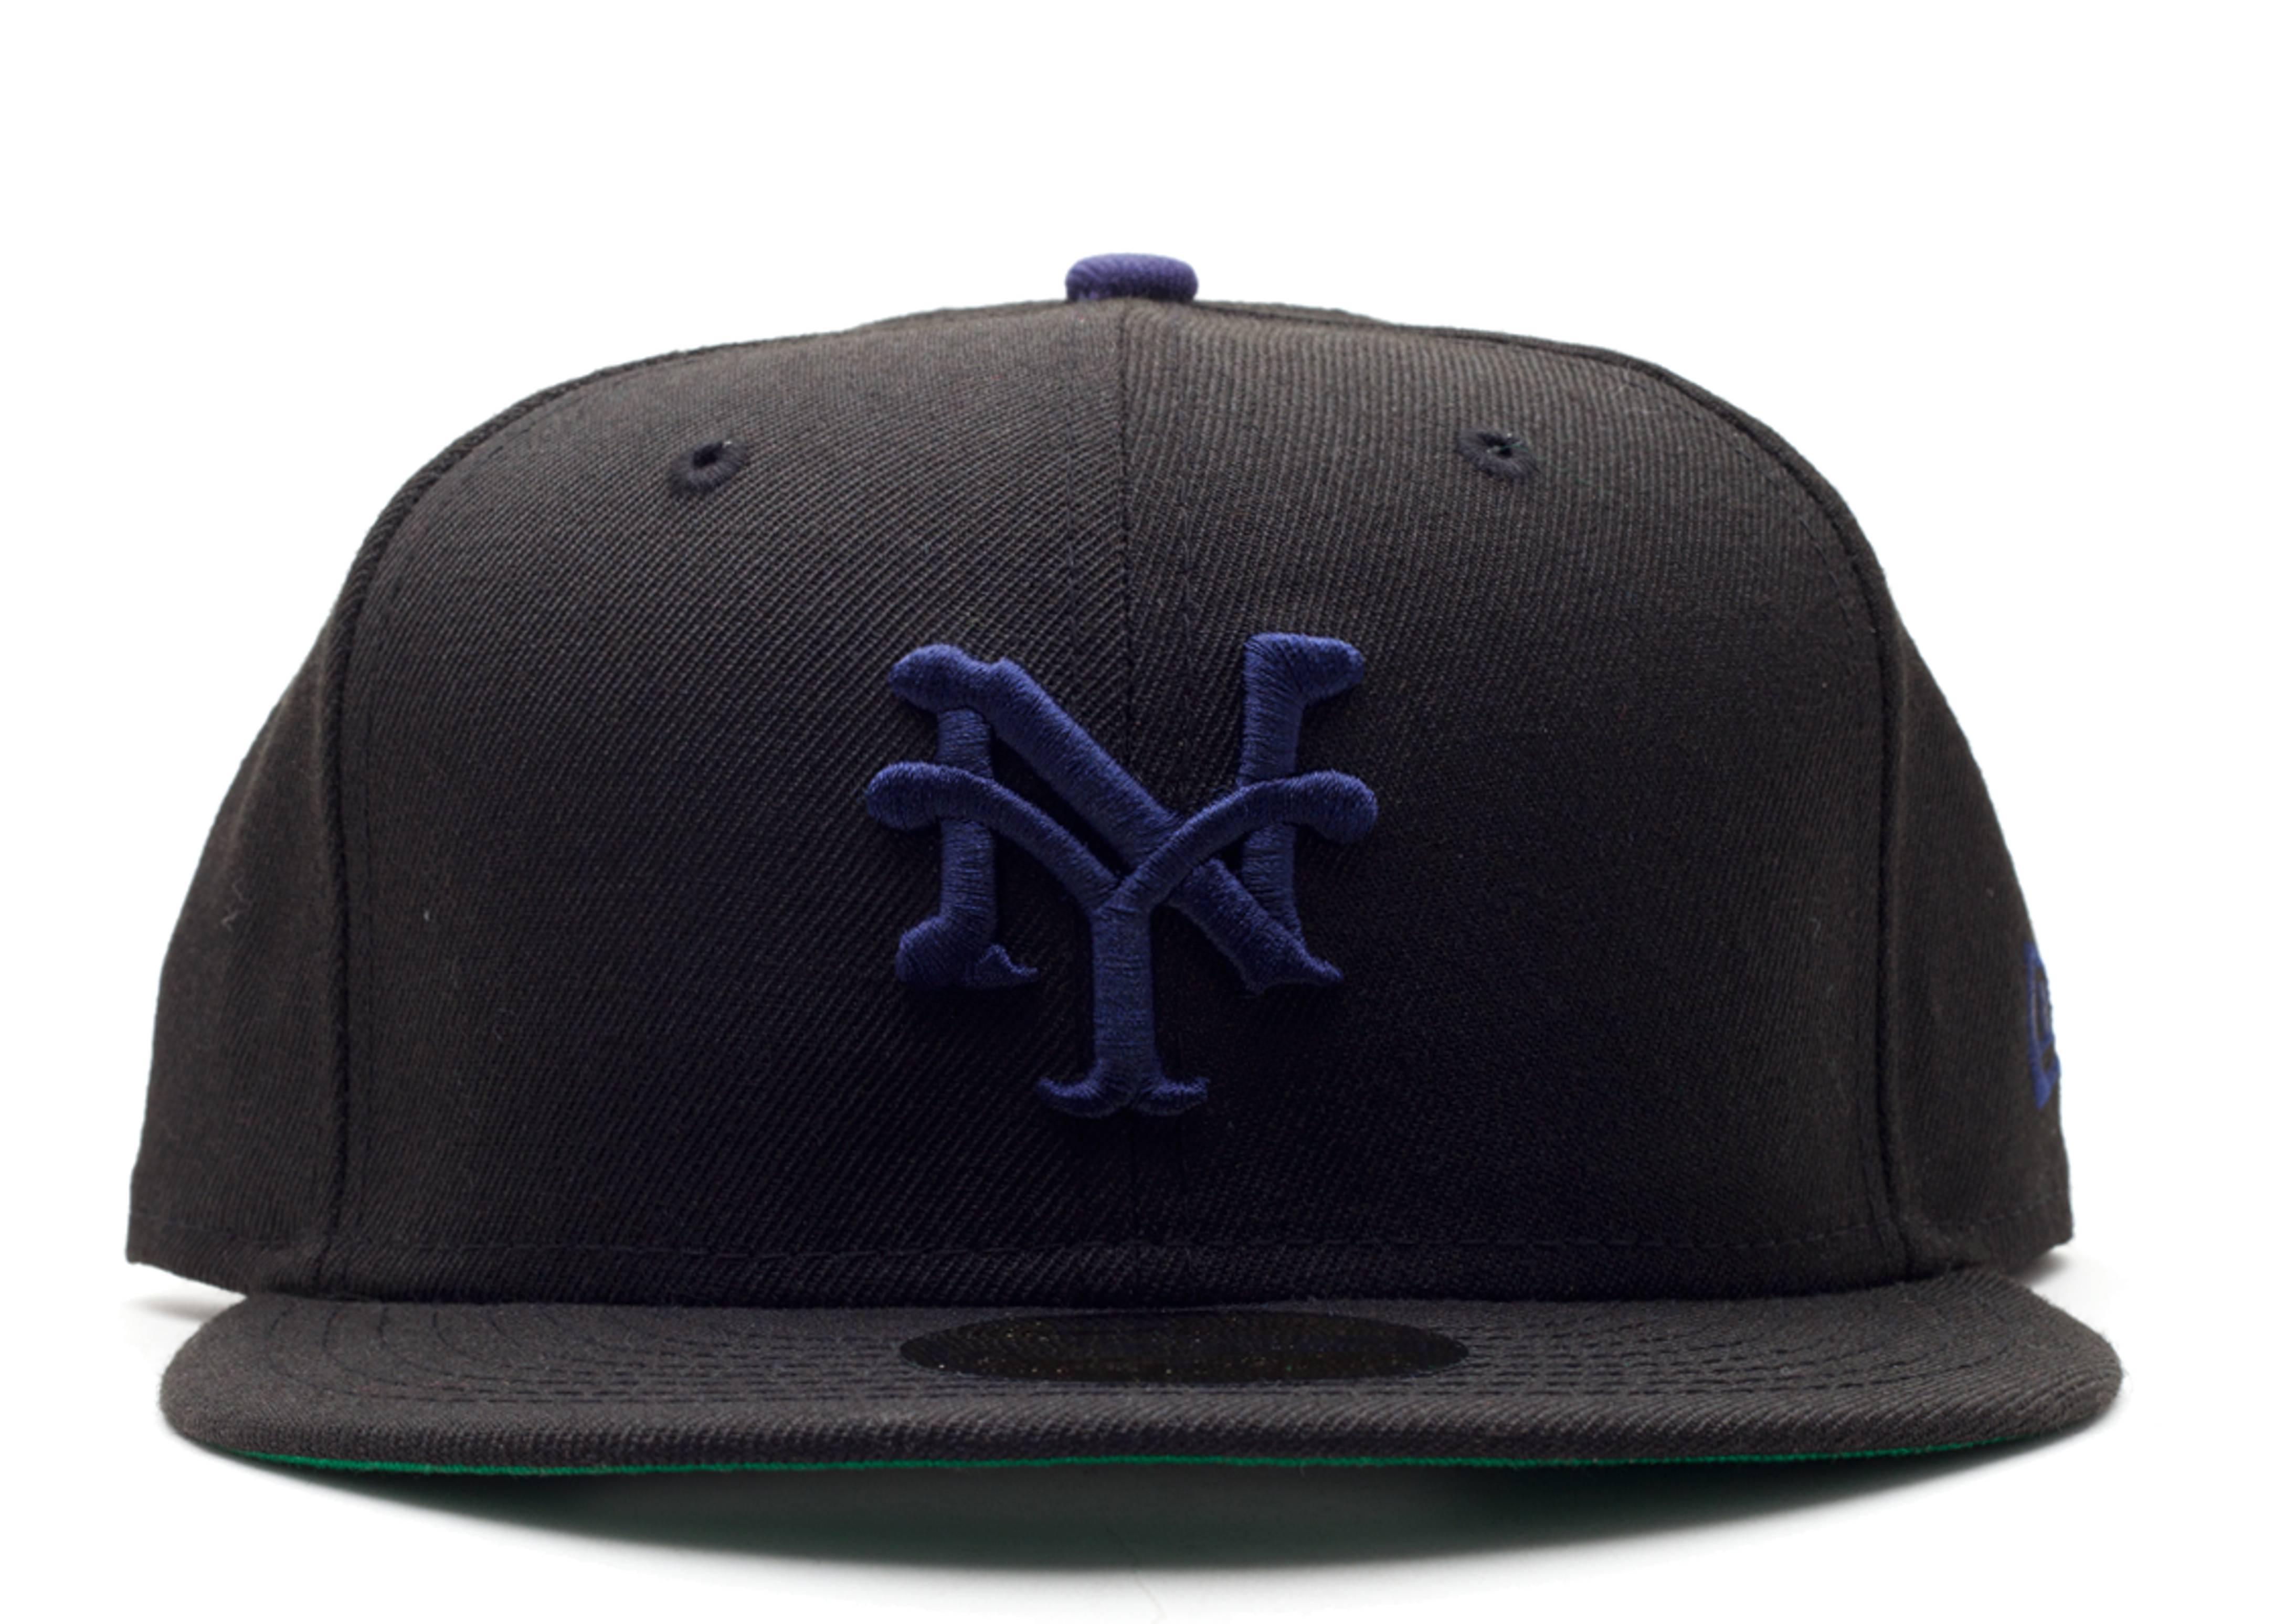 new york cubans fitted